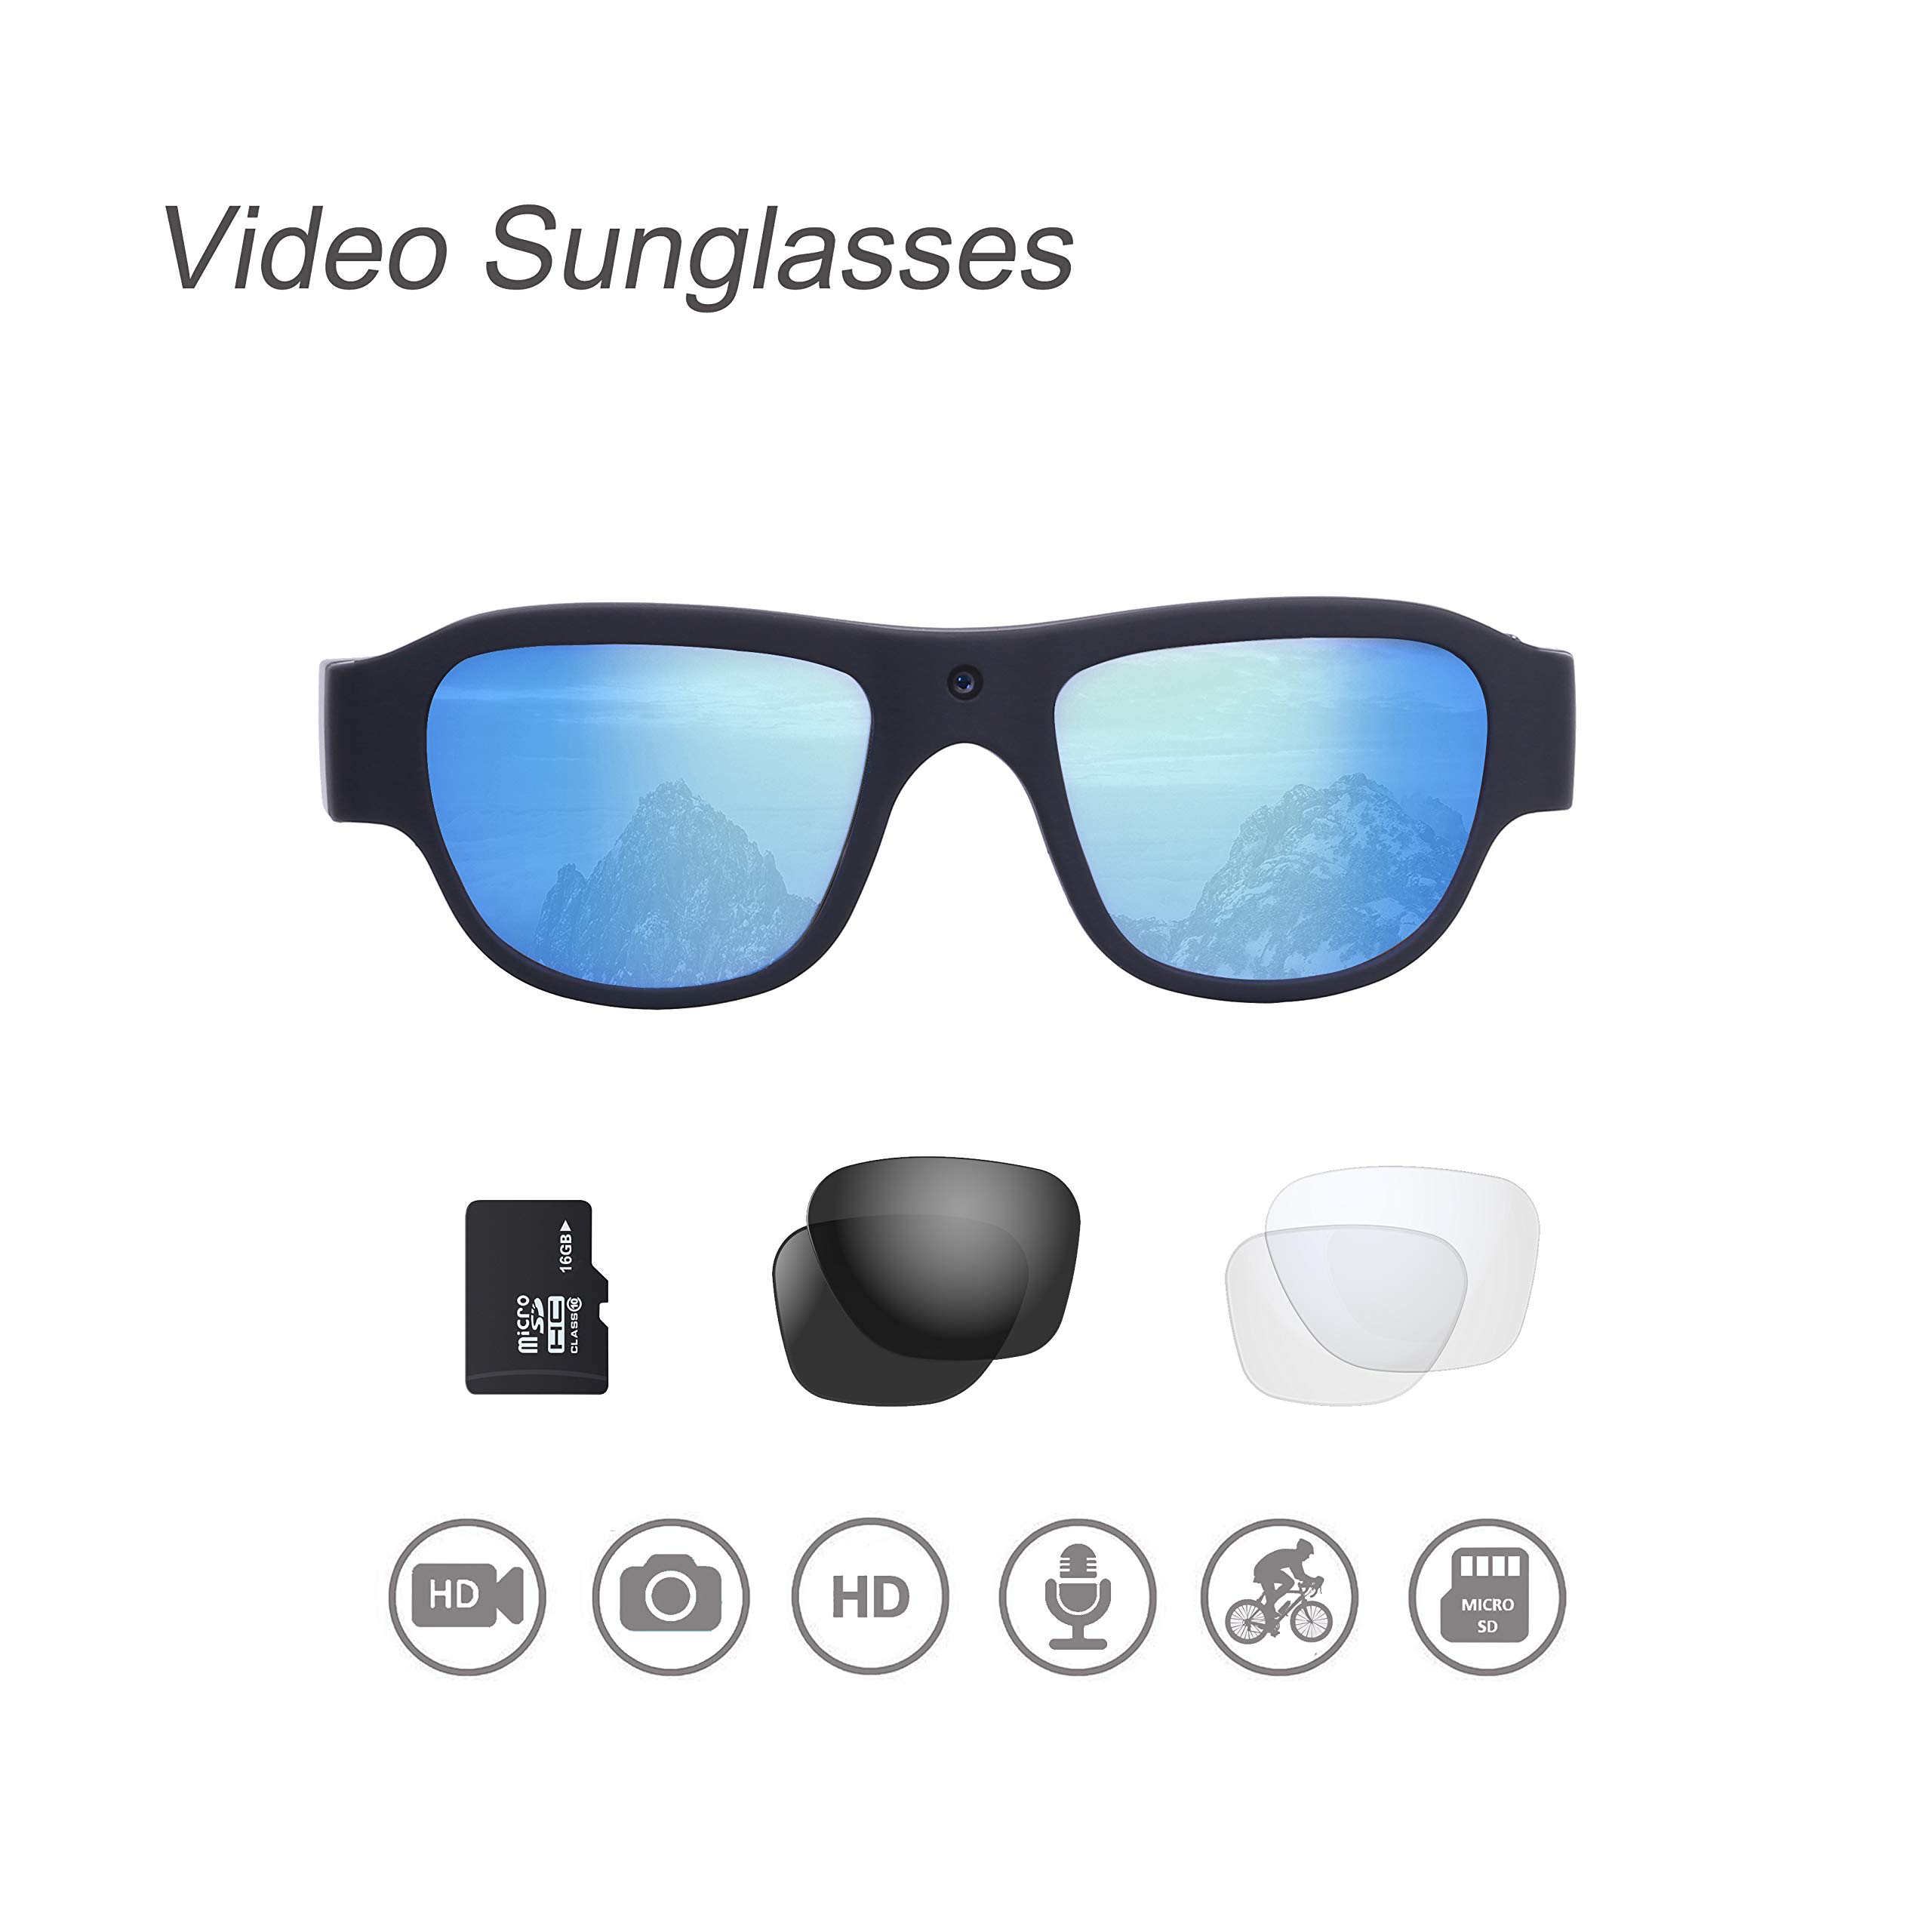 Video Sunglasses, 16GB 1080P HD Outdoor Sports Action Camera with Built in 15MP Camera and Polarized UV400 Lens, Compatible with Prescription Lens and Interchangeable Lens by OhO sunshine